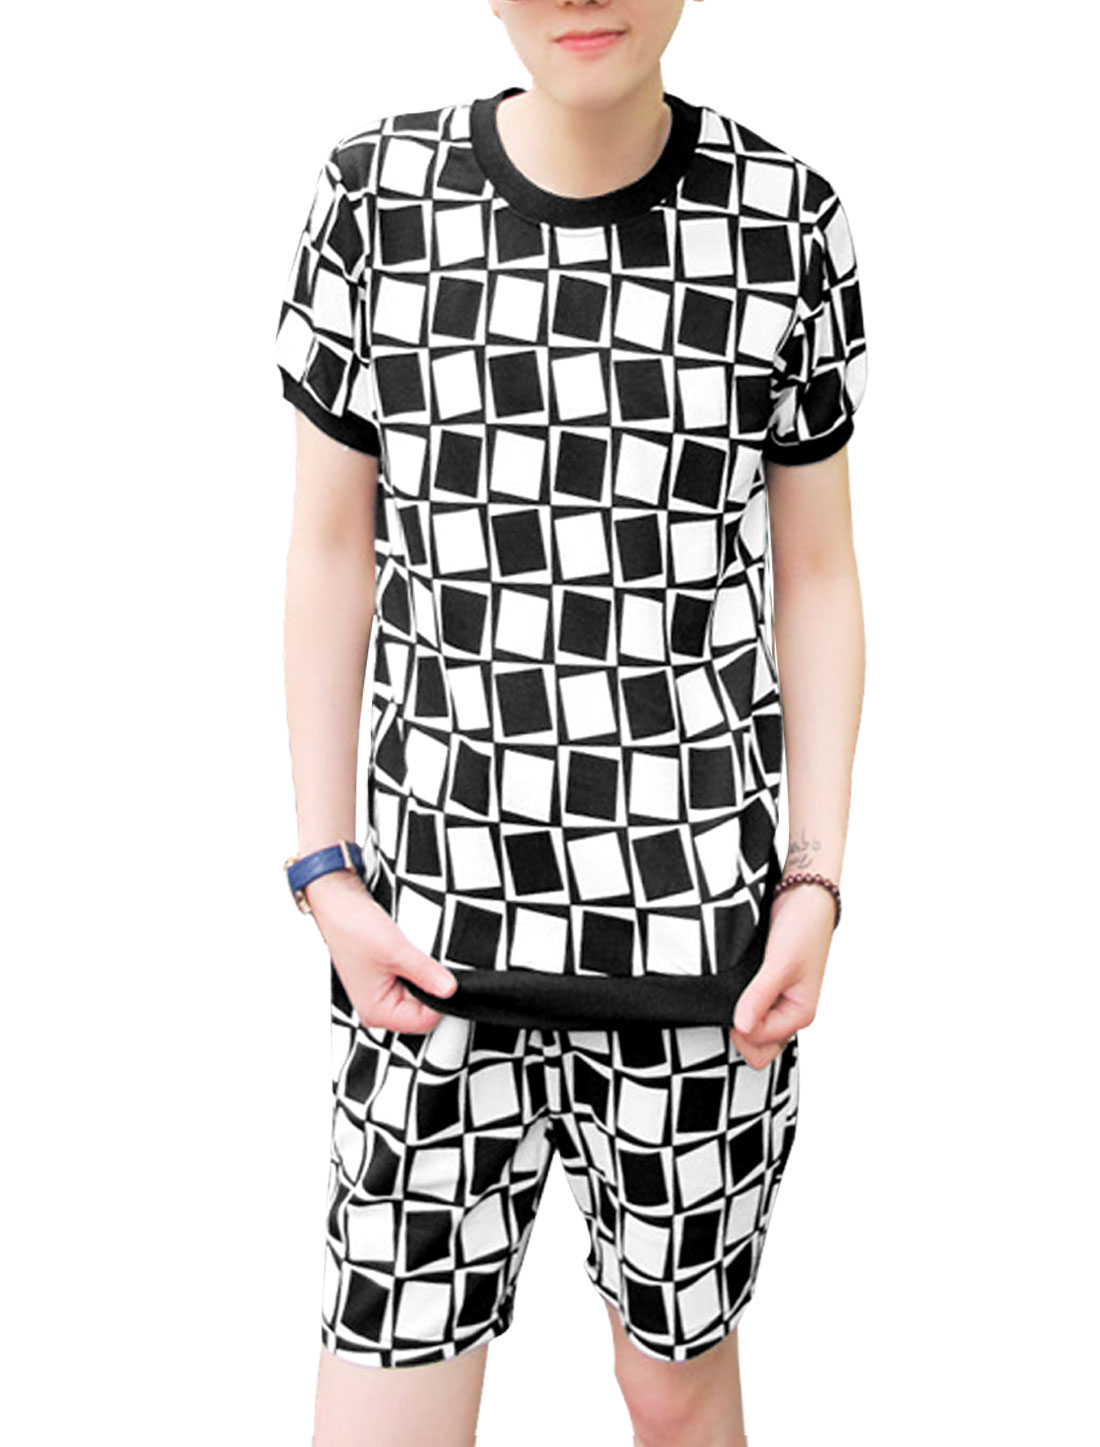 Men Square Pattern Top w Pockets Front Casual Shorts Black White S